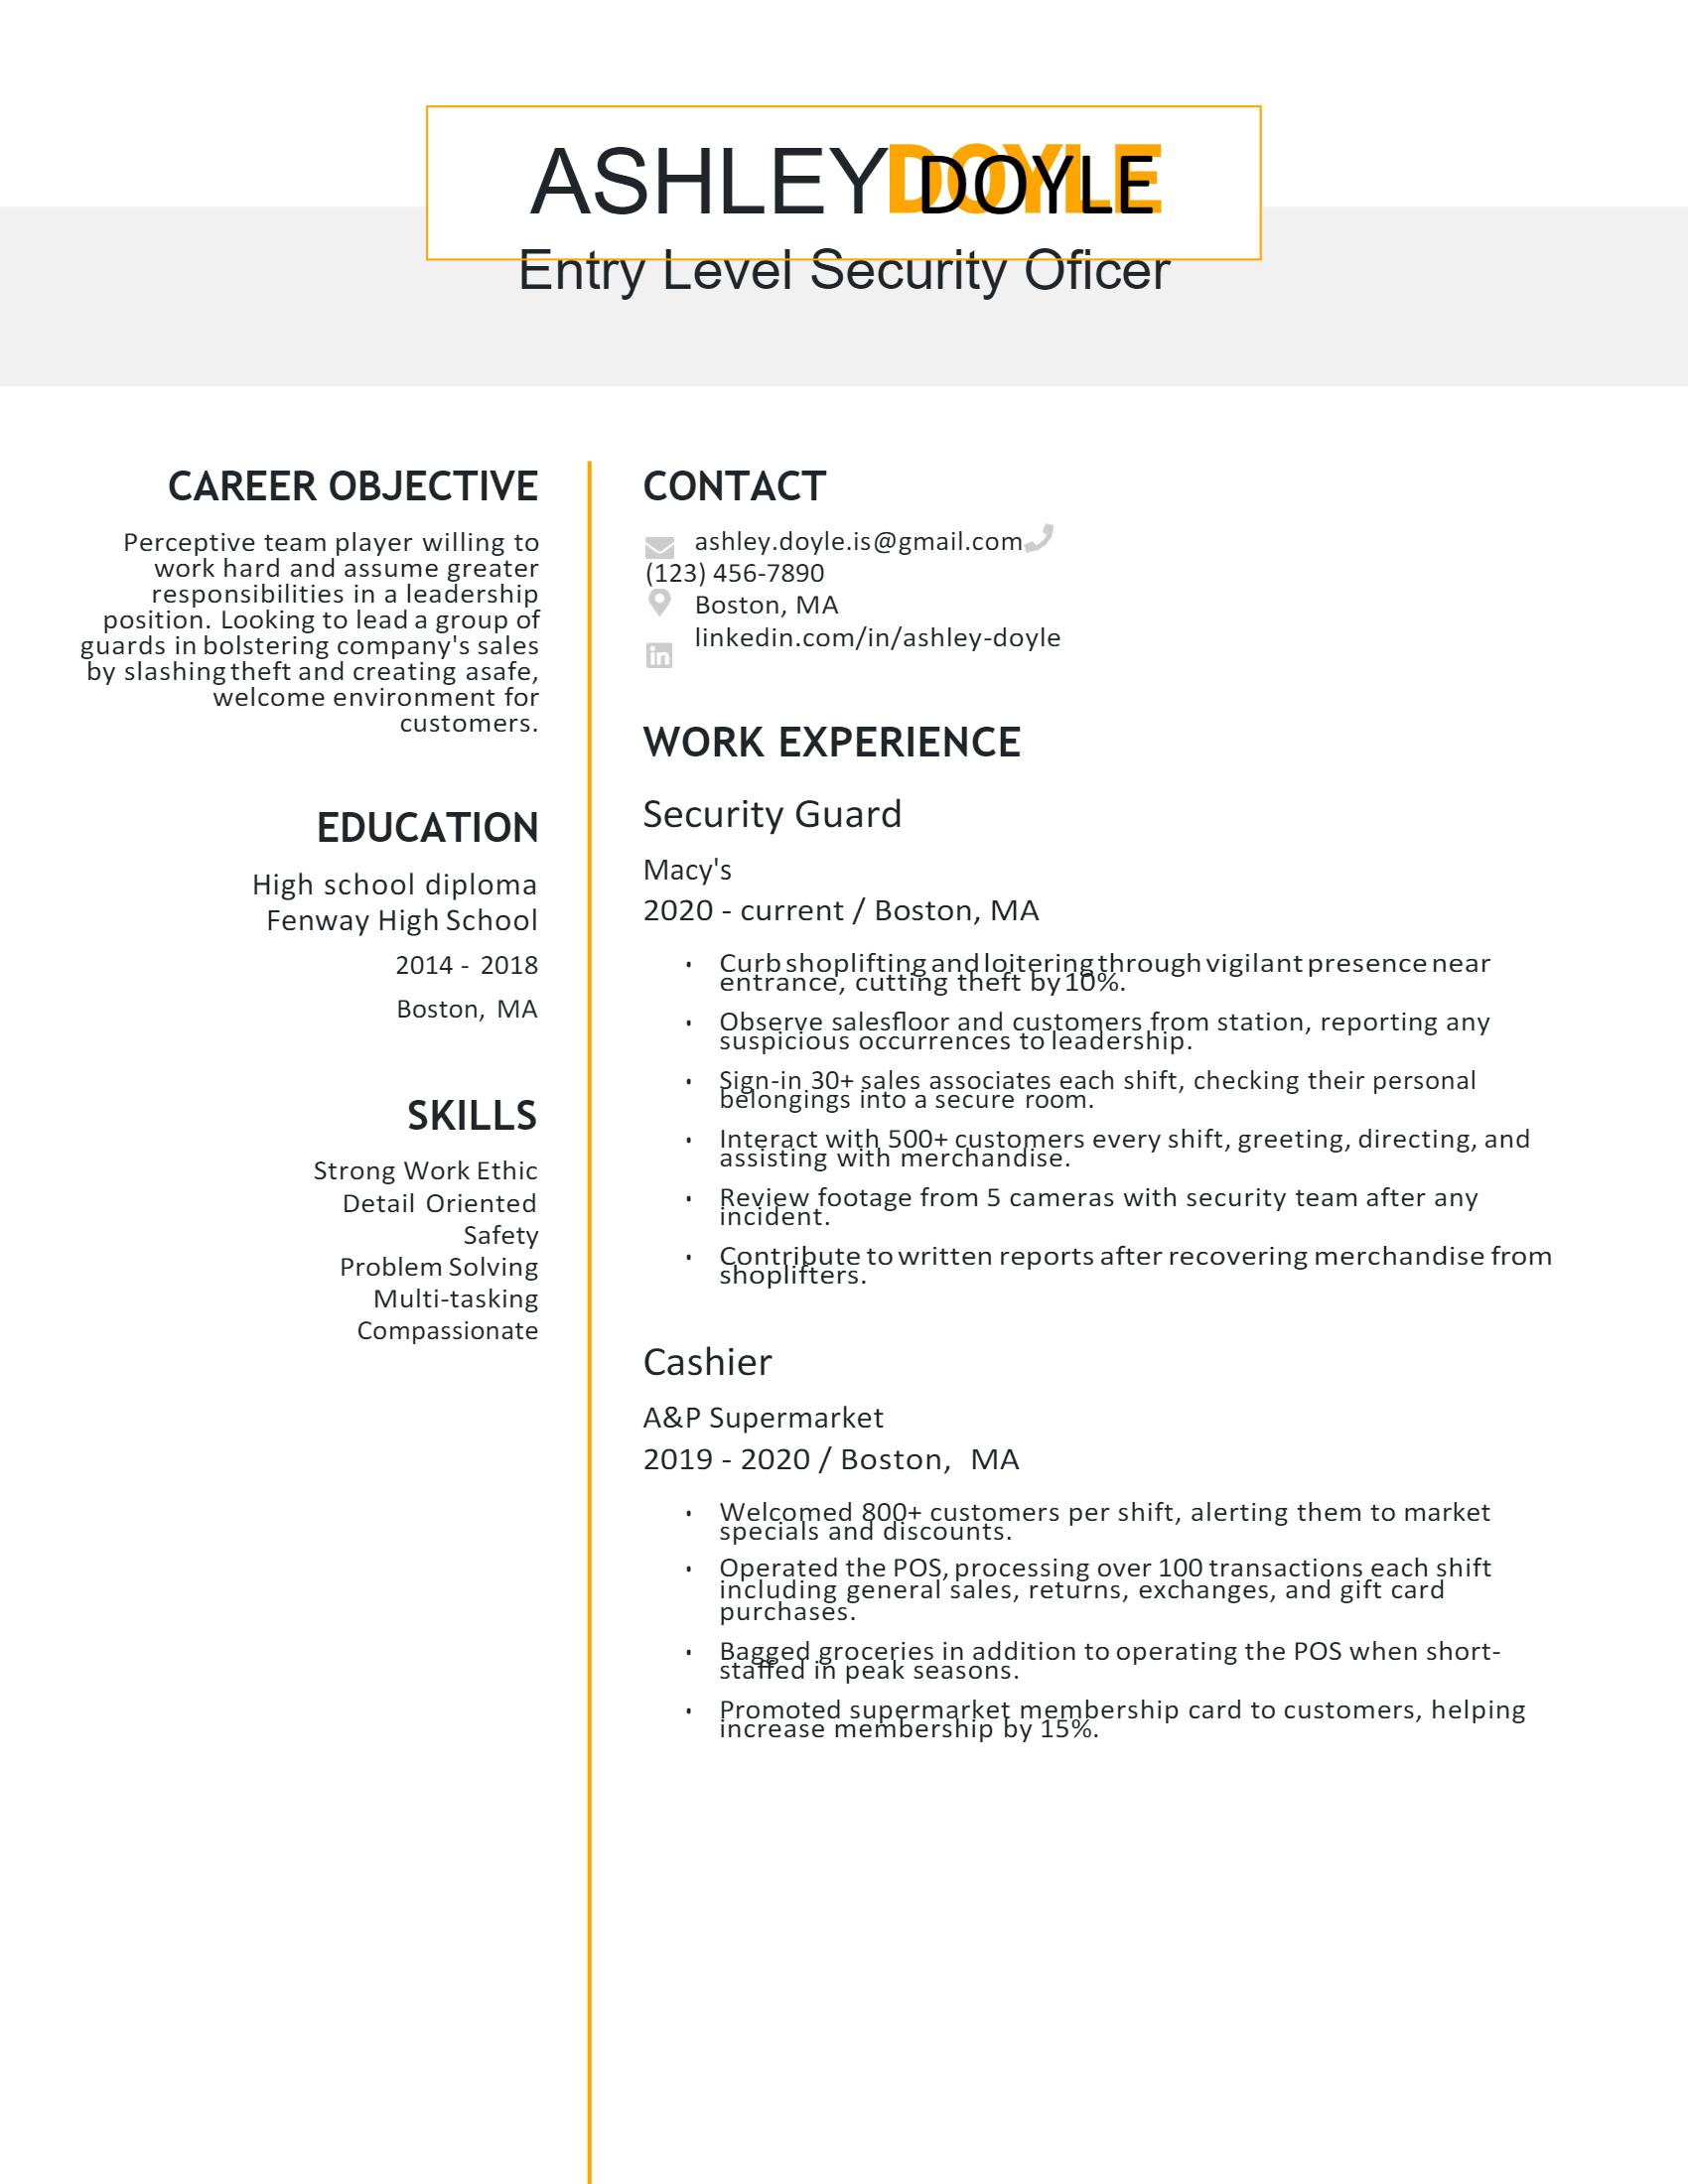 Entry-level Security Officer